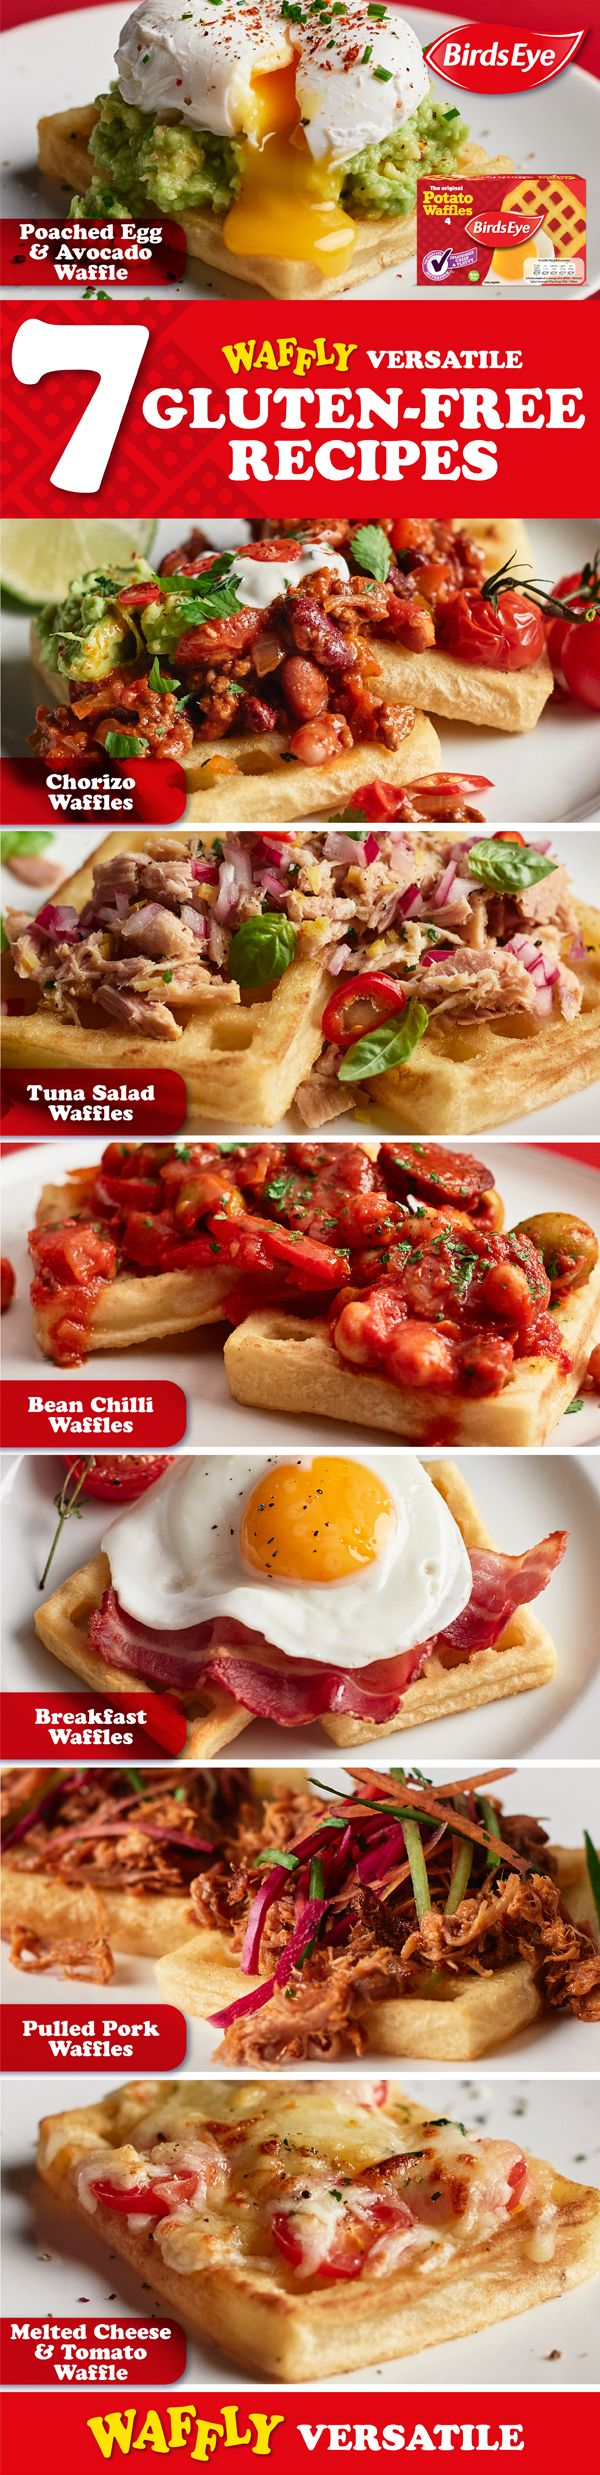 Birds Eye waffles are gluten-free!   Poached Egg & Avocado: https://www.birdseye.co.uk/recipes/waffle-with-avocado-and-poached-egg Chorizo: https://www.birdseye.co.uk/recipes/chorizo-waffle-stack Tuna Salad: https://www.birdseye.co.uk/recipes/waffles-with-tuna-salad Bean Chilli: https://www.birdseye.co.uk/recipes/waffle-bean-chilli Pulled Pork: https://www.birdseye.co.uk/recipes/waffle-with-bbq-pulled-pork Melted Cheese & Tomato…